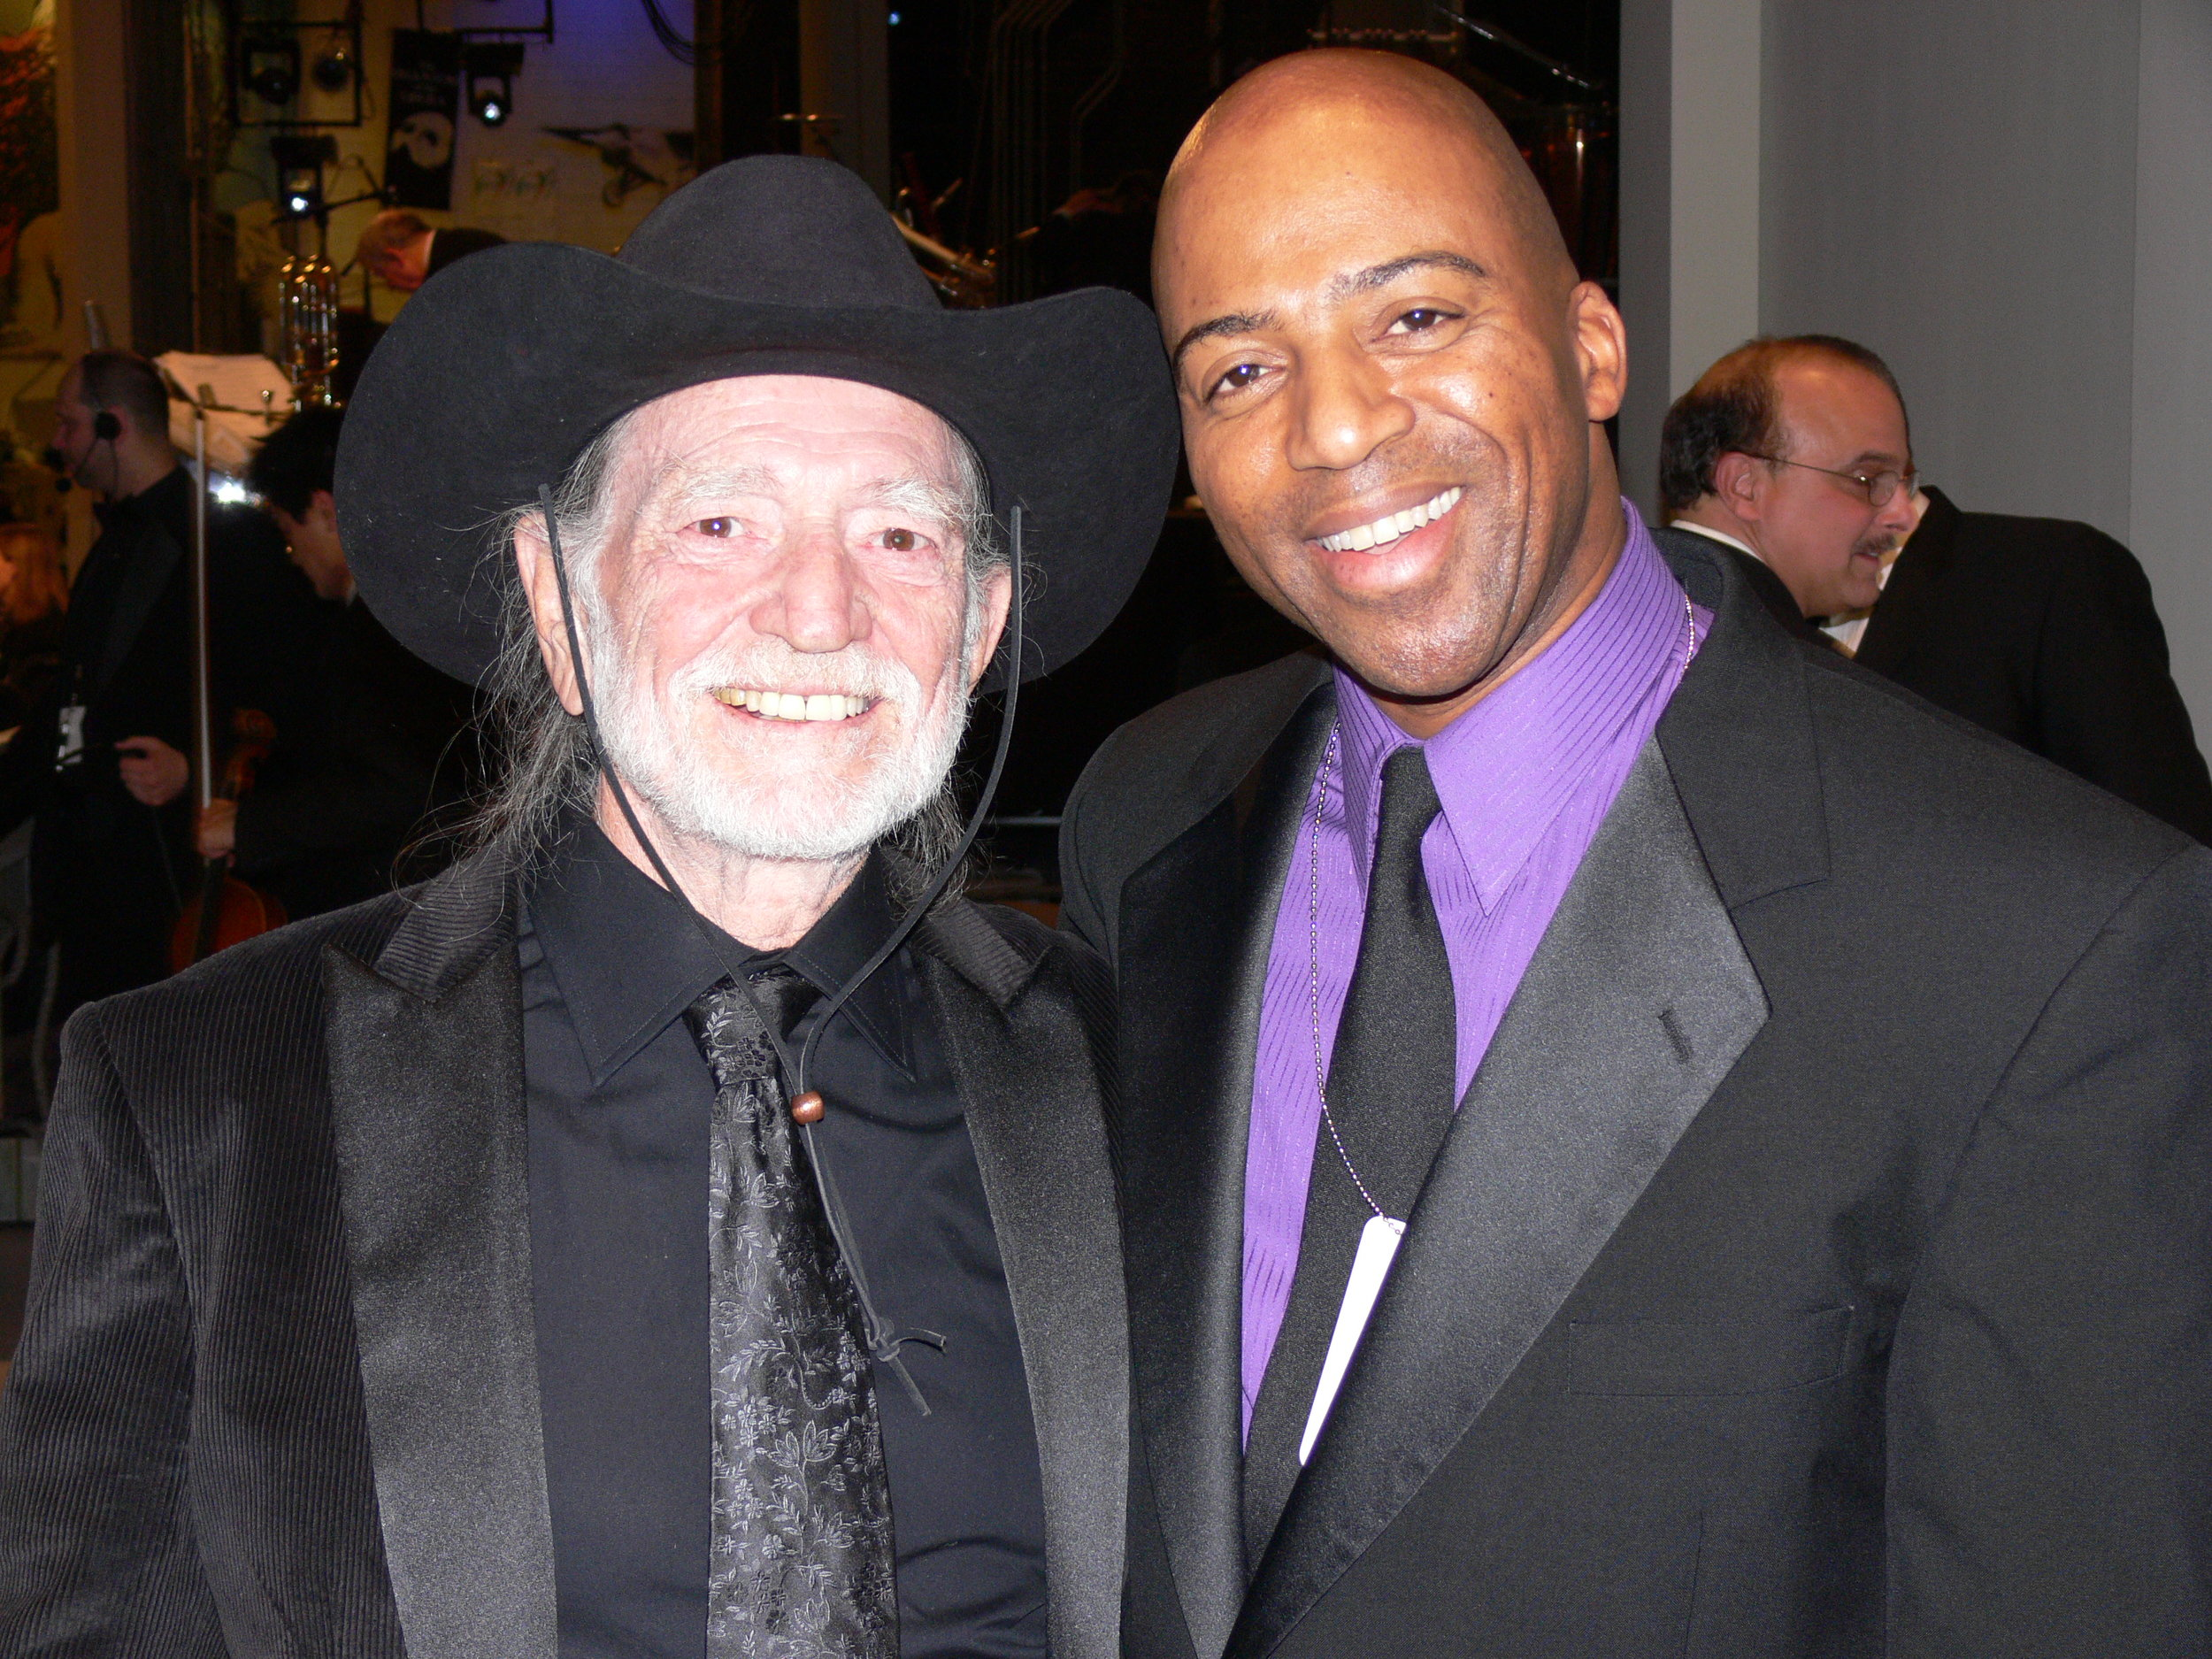 Willie Nelson and Keith Robinson